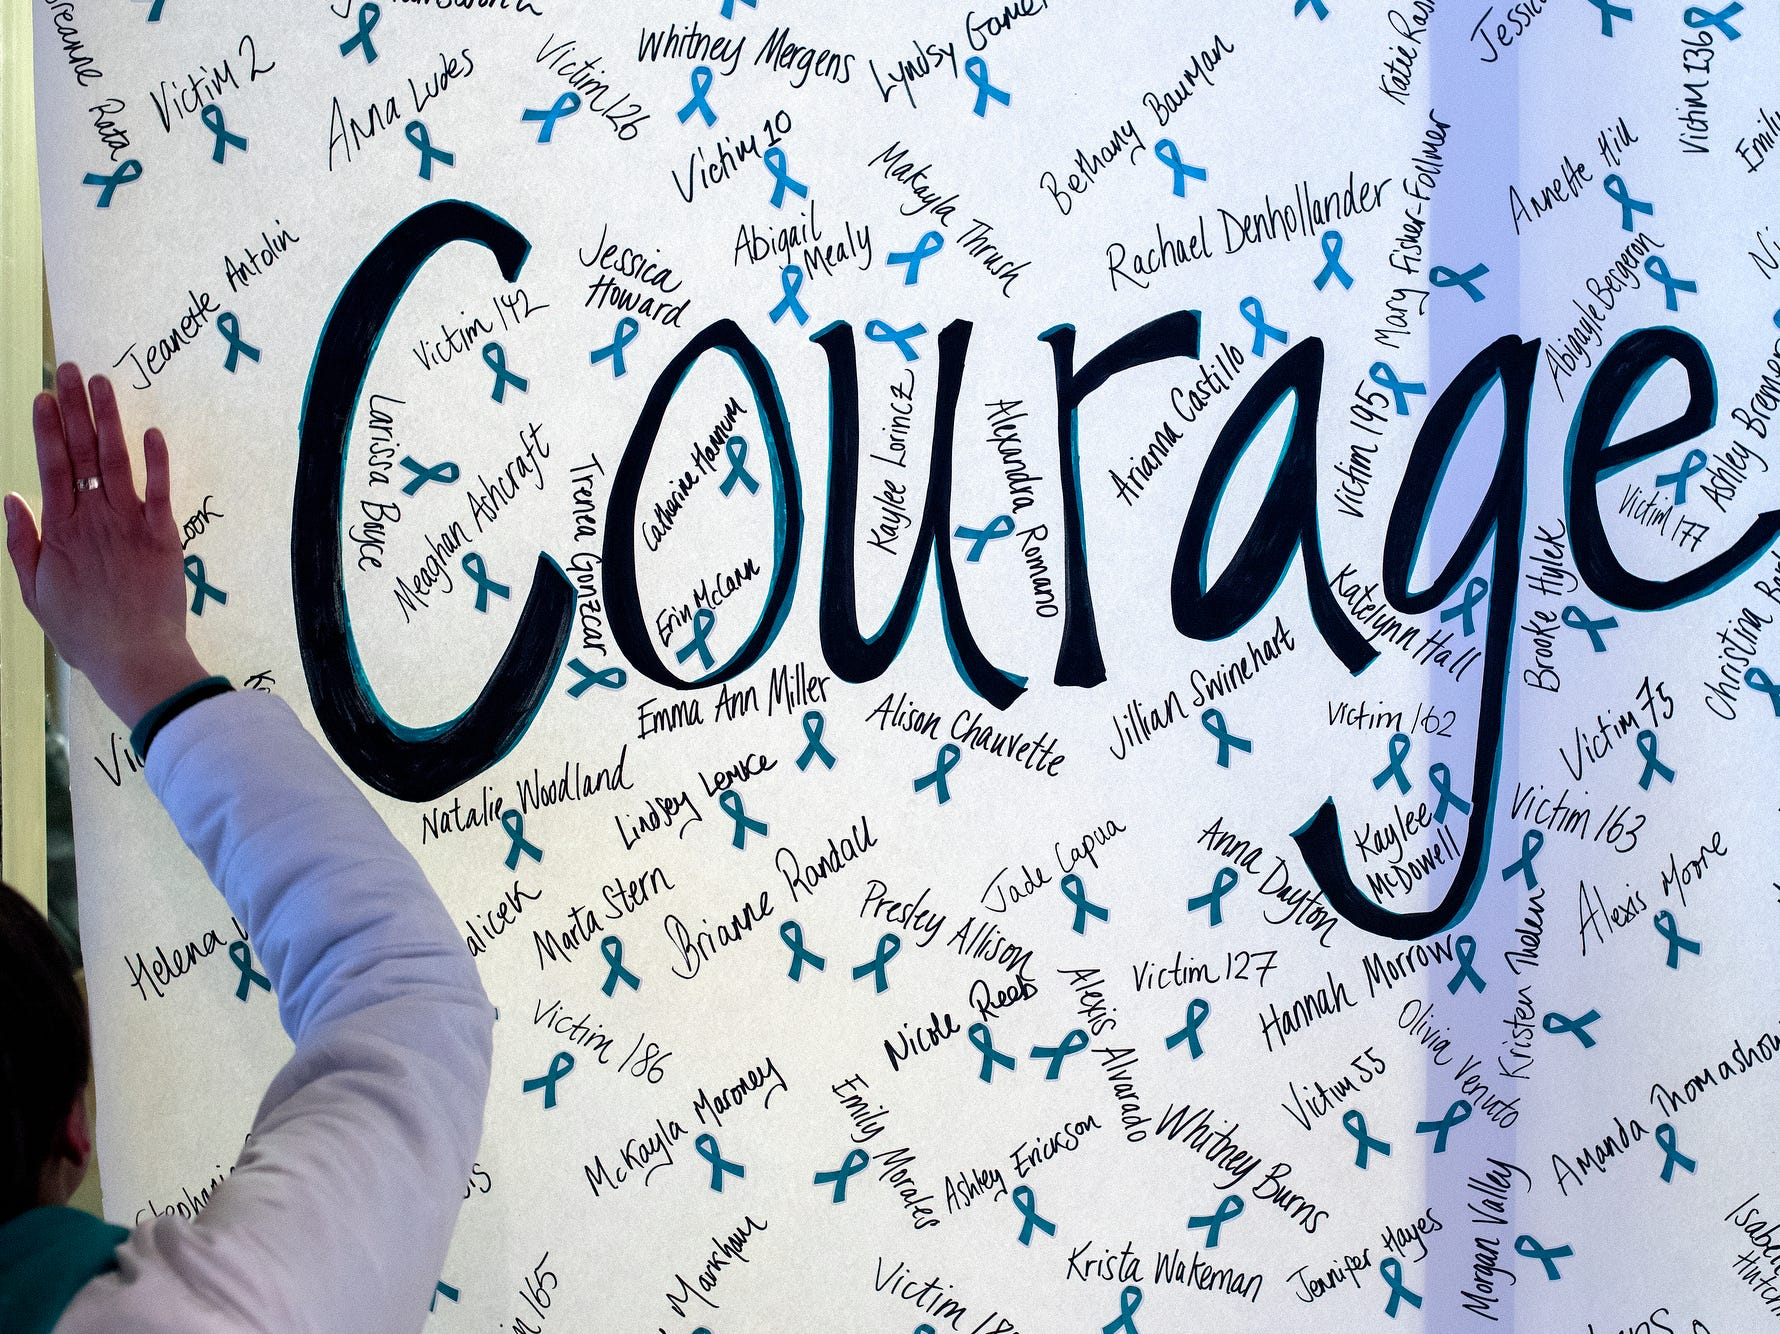 "A ReclaimMSU volunteer helps put up a sign reading 'courage' with the names of Nassar survivors during the ""One Year On: Celebrating Courage and Creating Change"" event on Thursday, Jan. 24, 2019, outside the Hannah Administration Building on the Michigan State University campus in East Lansing. The event was organized by Reclaim MSU and held on the one-year anniversary of Larry Nassar's sentencing."